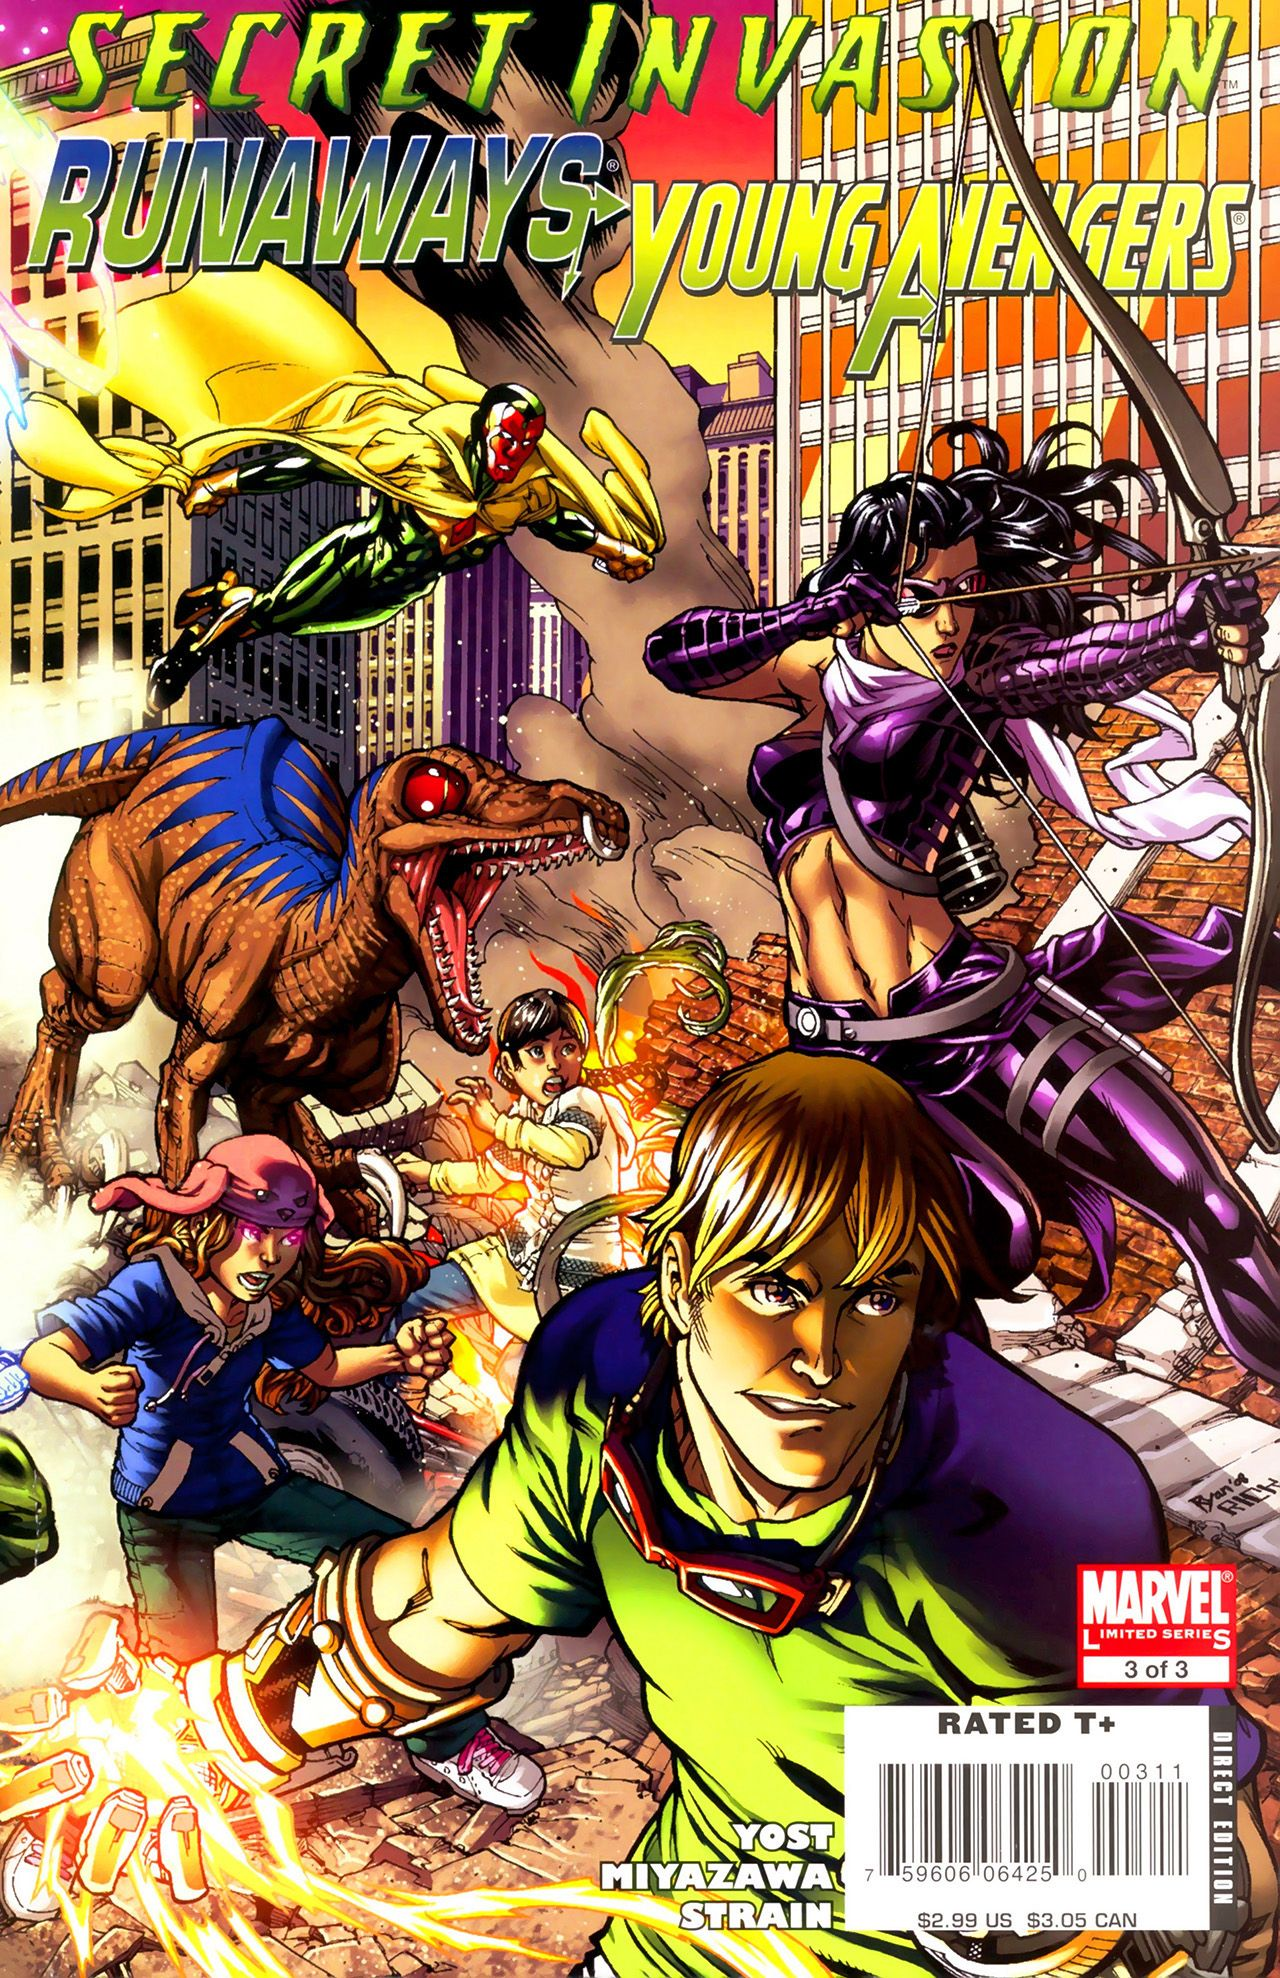 Read online Secret Invasion: Runaways/Young Avengers comic -  Issue #3 - 1